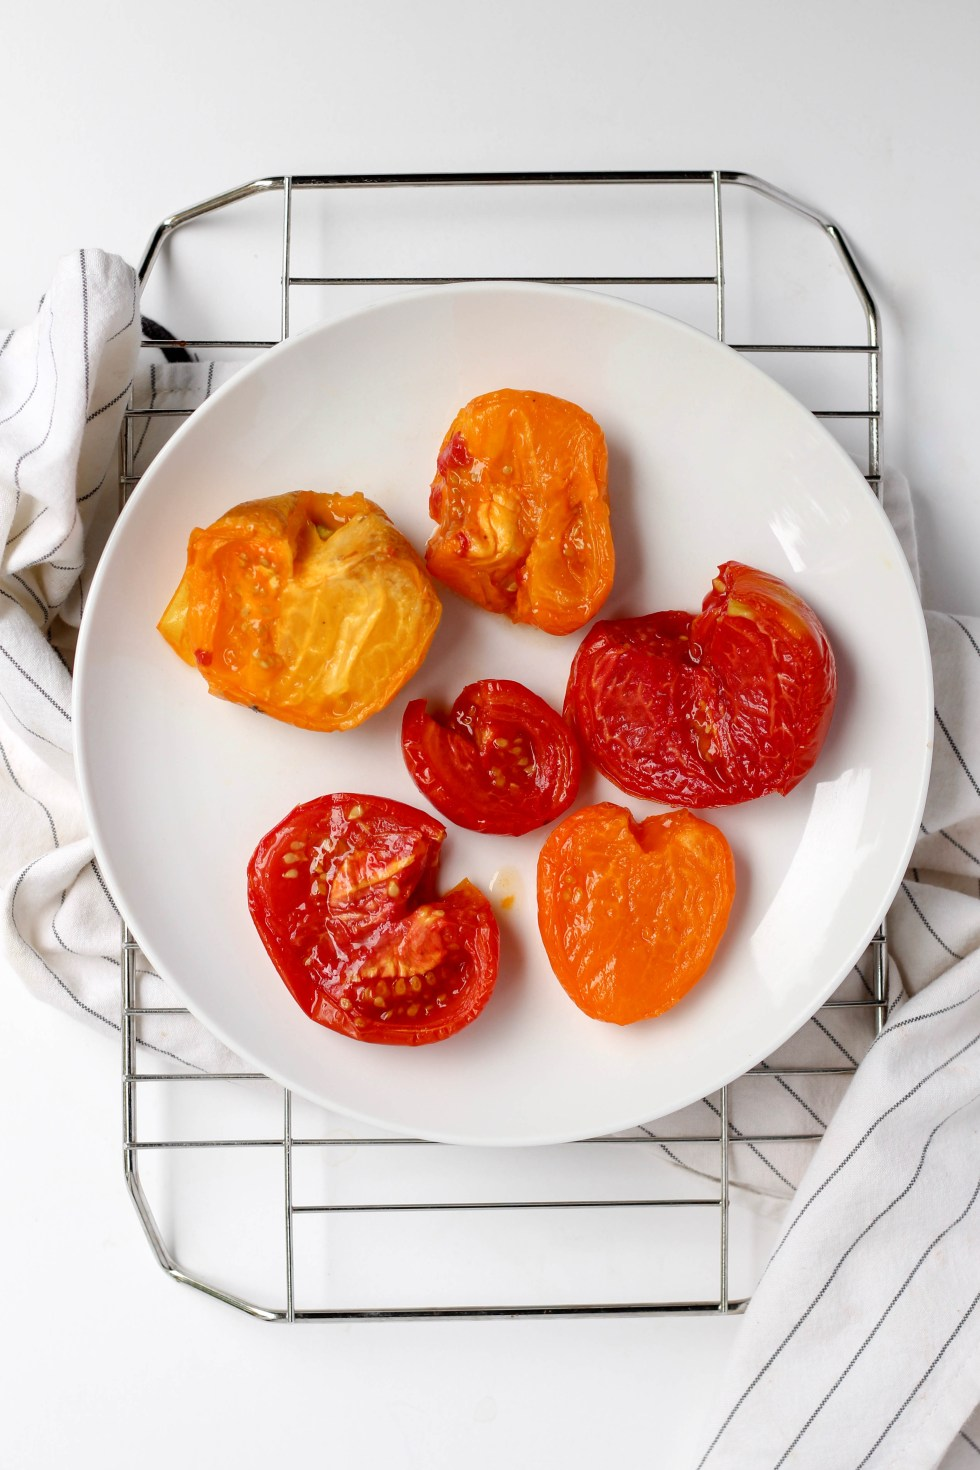 5 Simple Tomato Recipes for when you have too many tomatoes // POP KITCHEN